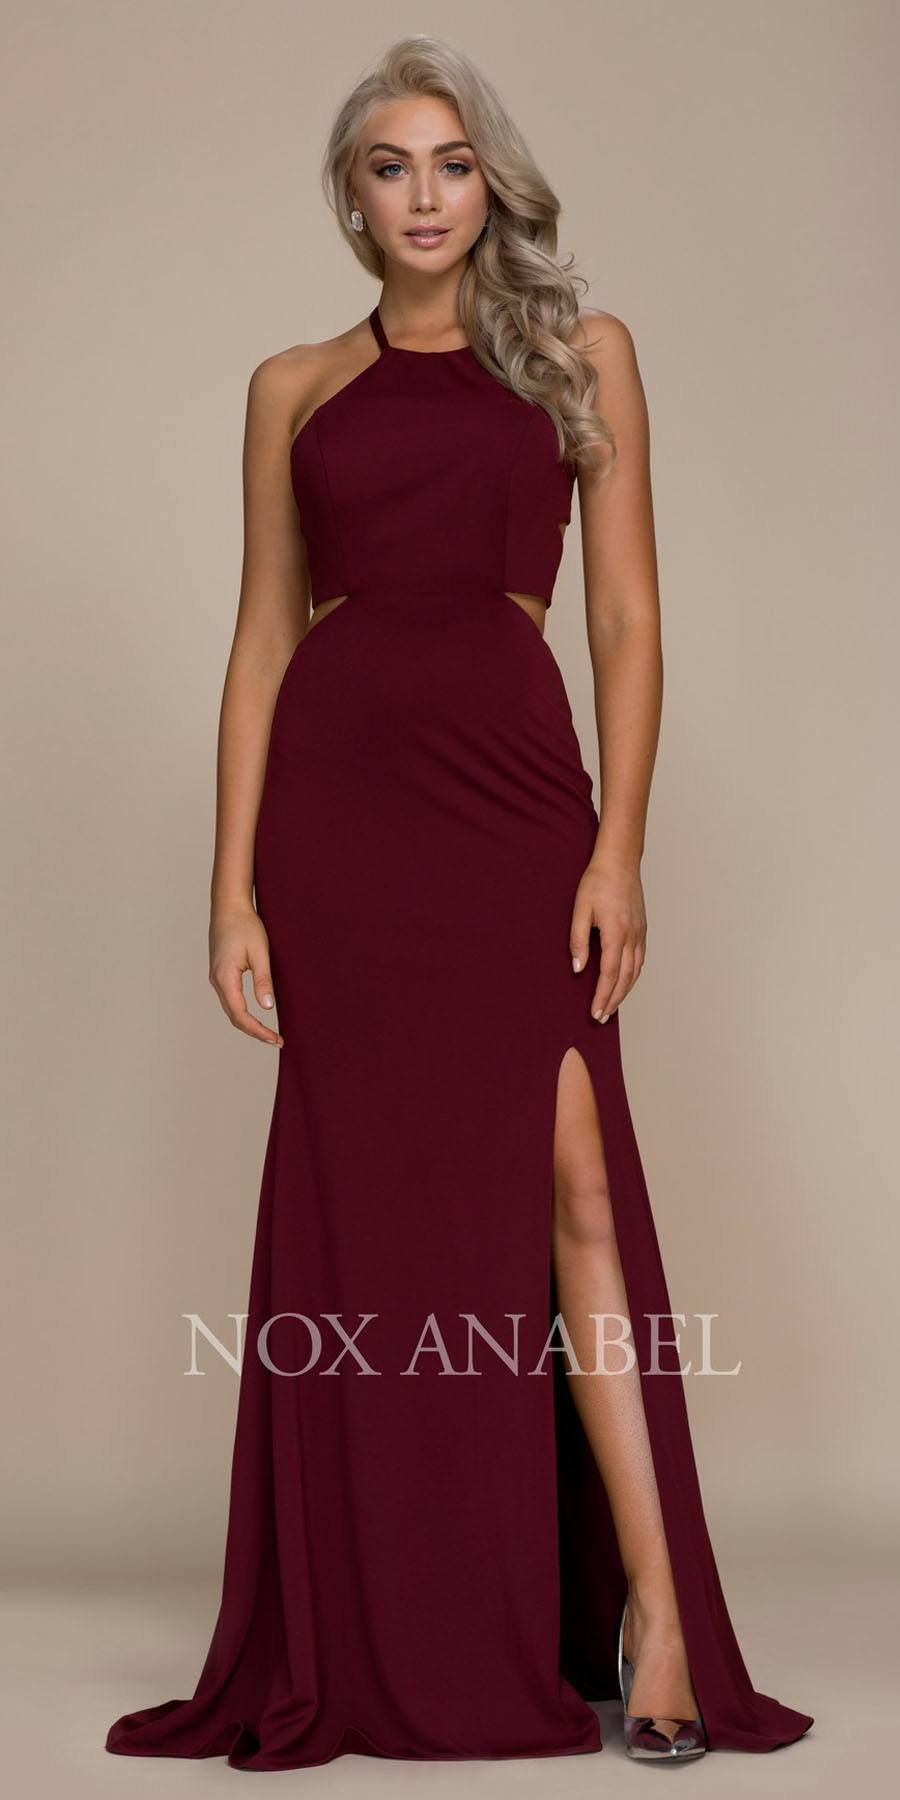 94d64676588 Burgundy Halter Cut Out Long Prom Dress Strappy Back with Slit. Tap to  expand